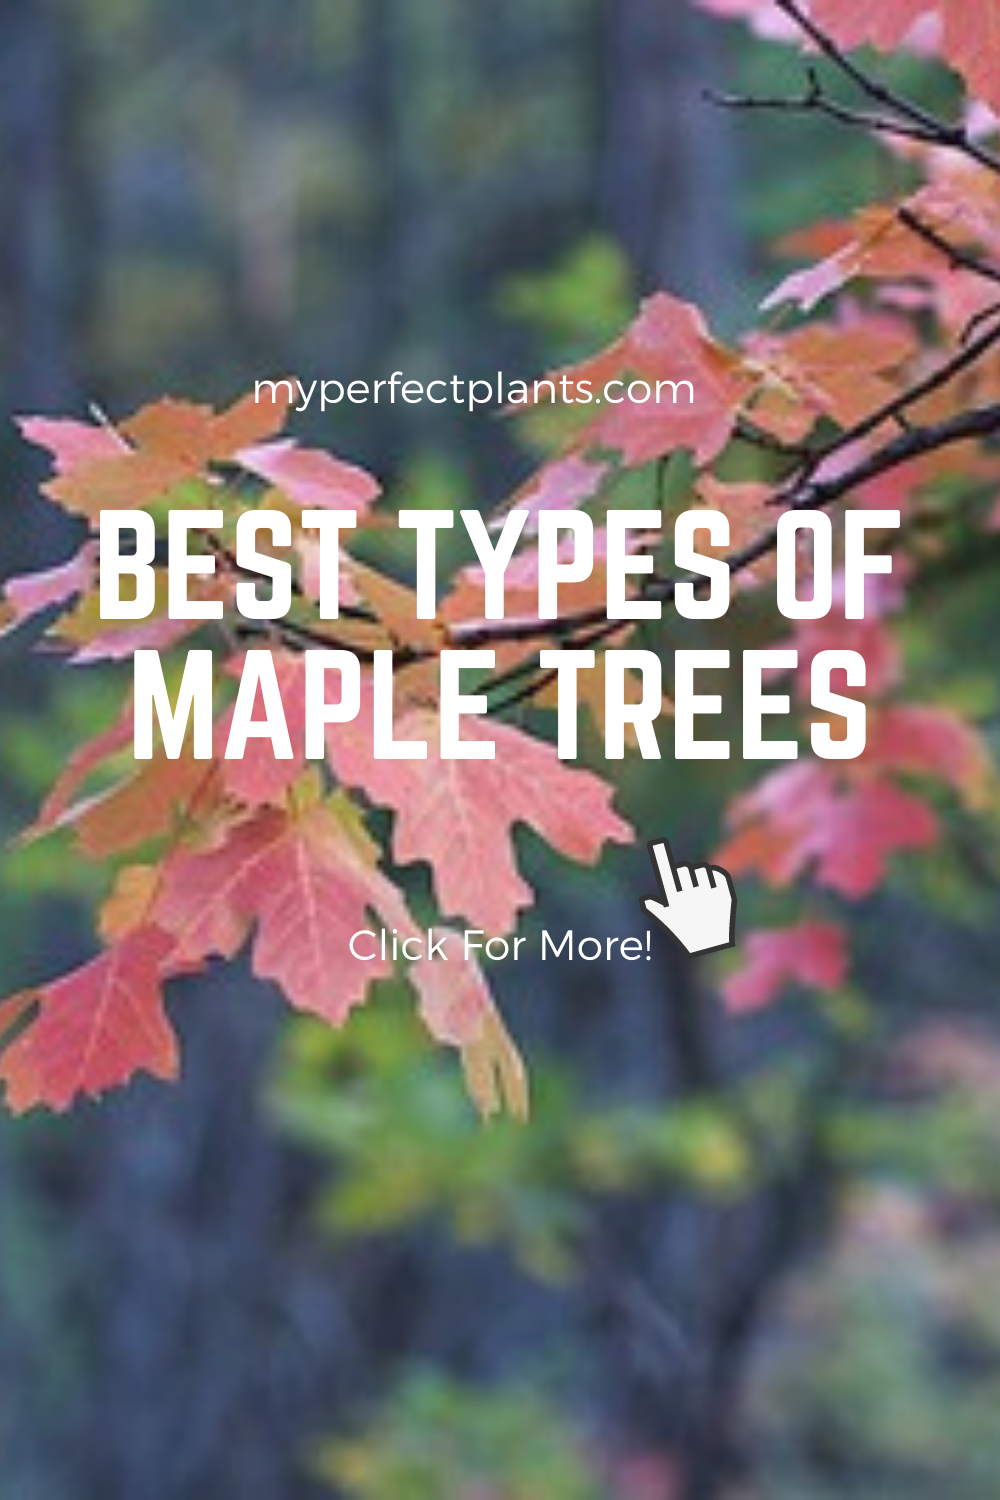 Buy Large Maple Trees For Sale Buy Maple Trees Online Perfect Plants Maple Tree Japanese Maple Tree Tapping Maple Trees